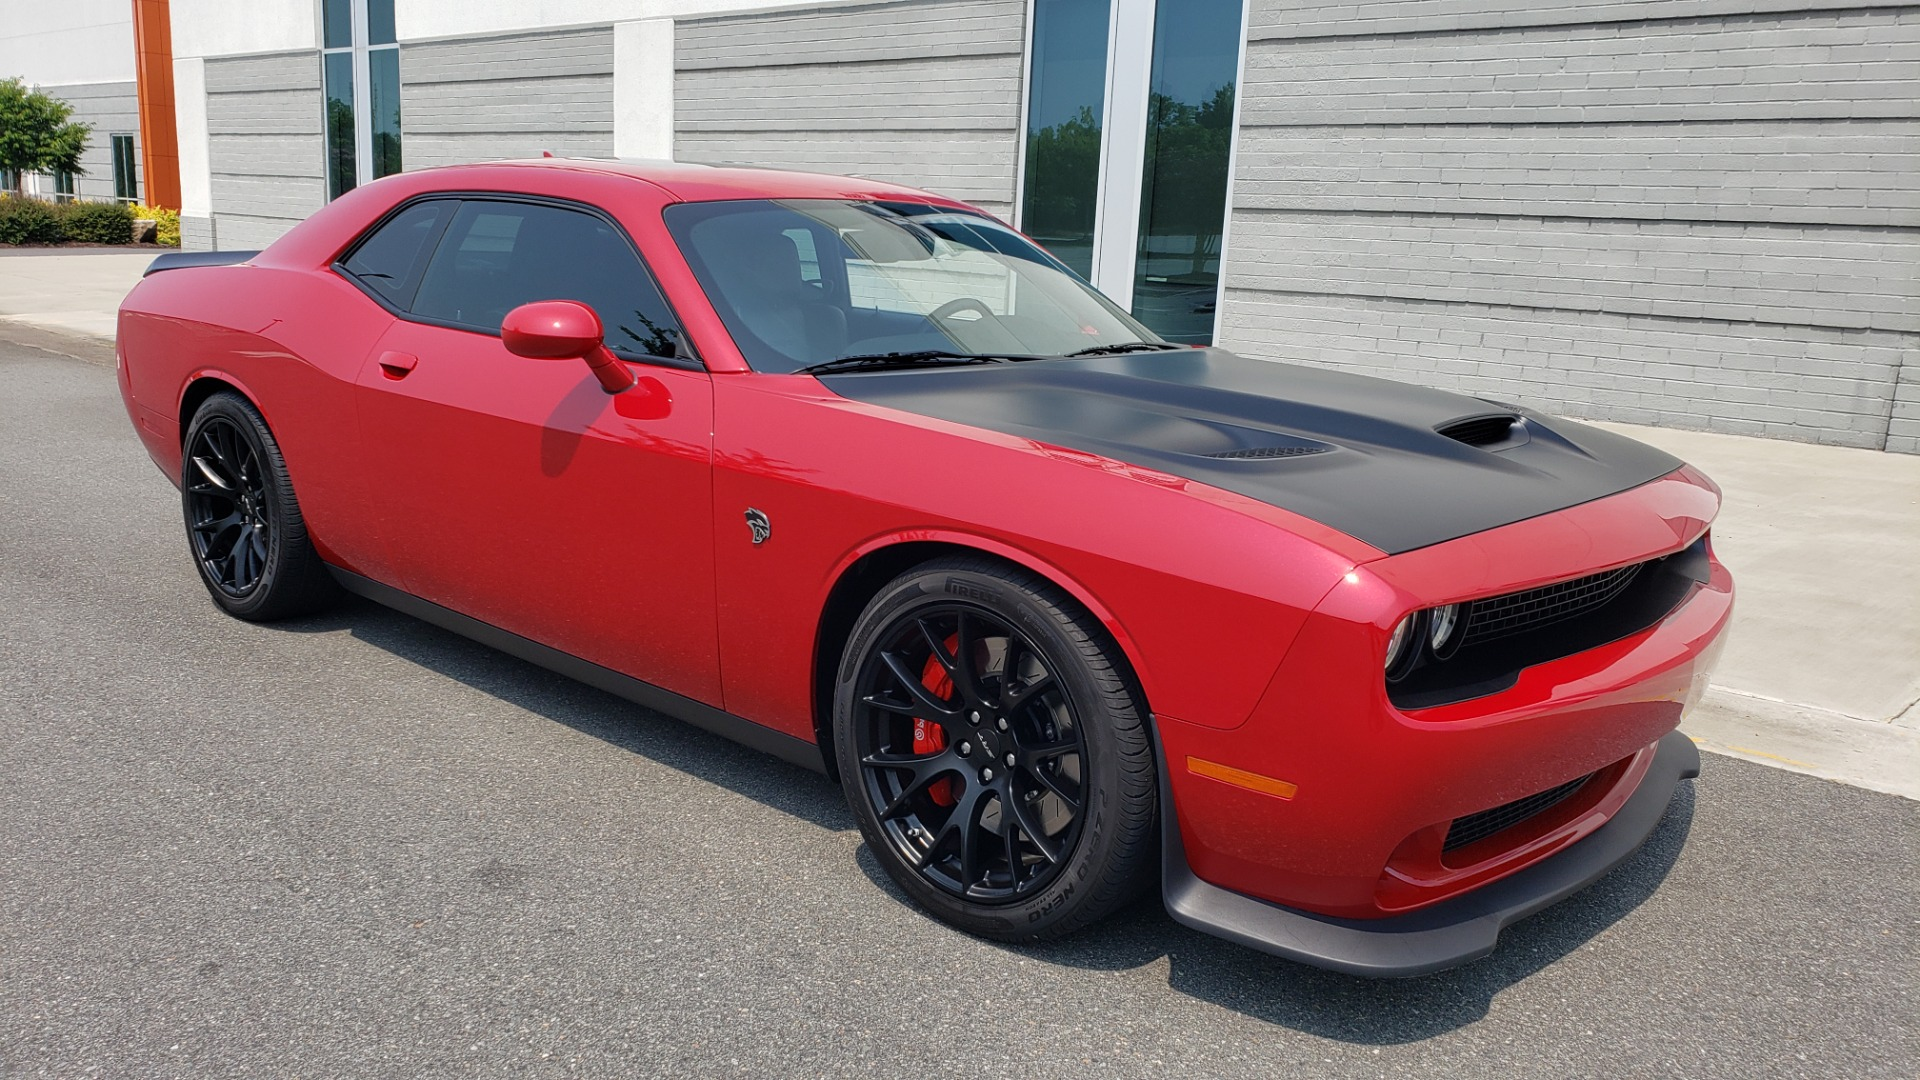 Used 2016 Dodge CHALLENGER SRT HELLCAT 707HP COUPE / AUTO / NAV / SUNROOF / H/K SND / REARVIEW for sale $60,995 at Formula Imports in Charlotte NC 28227 14